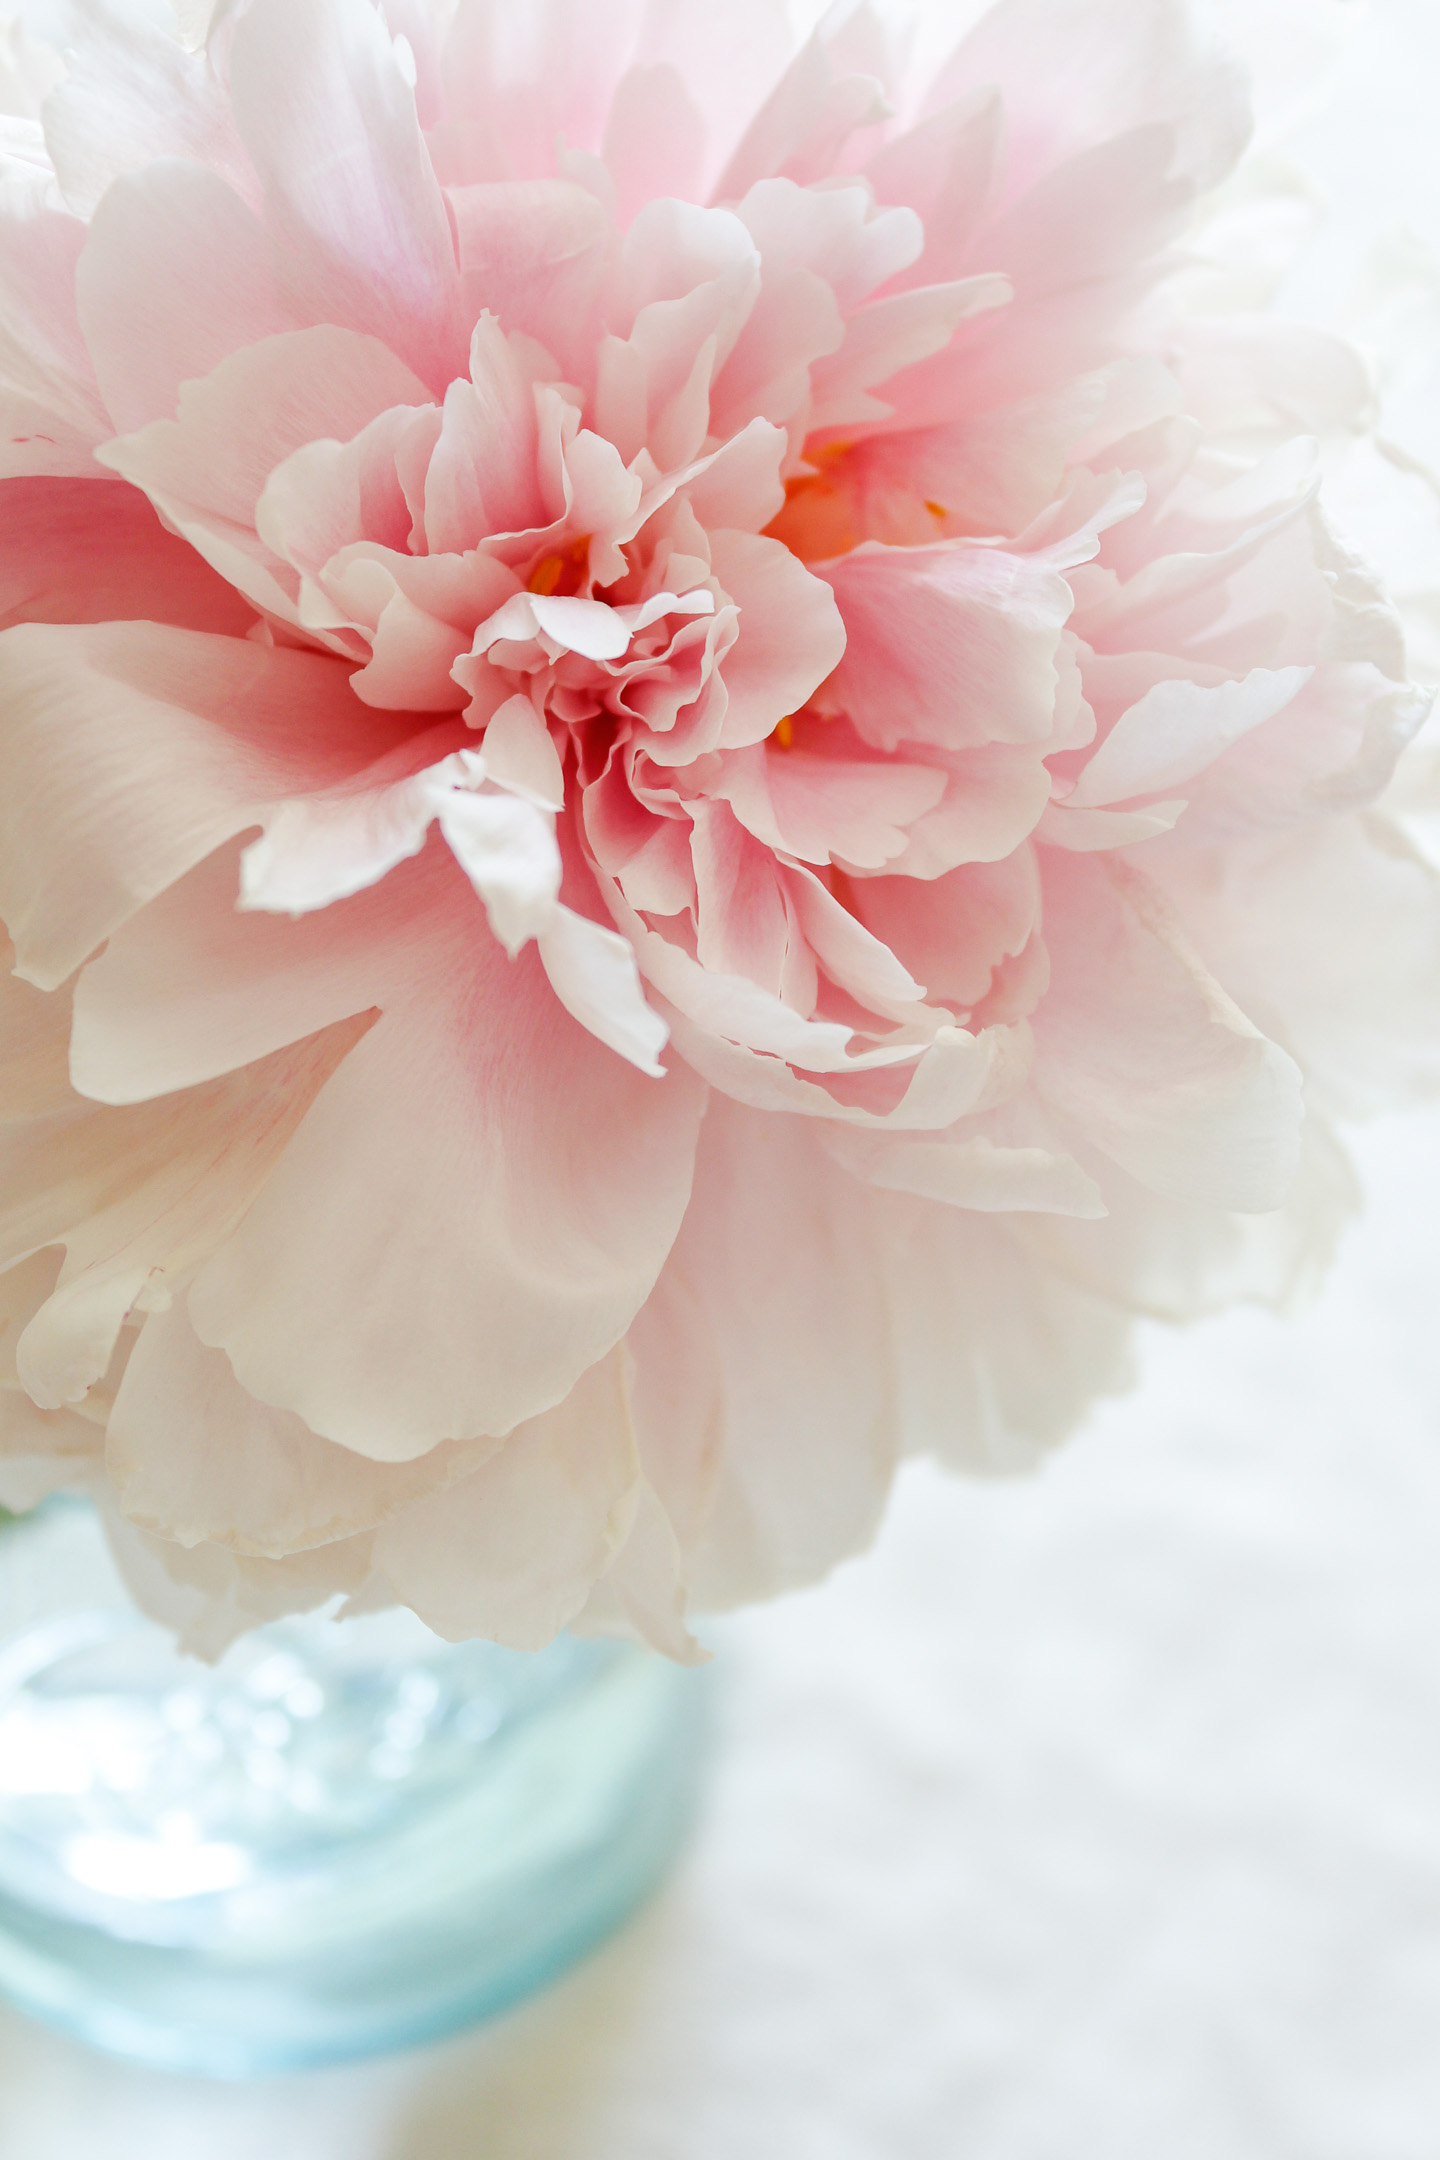 A pink peony in an old, blue Ball jar.